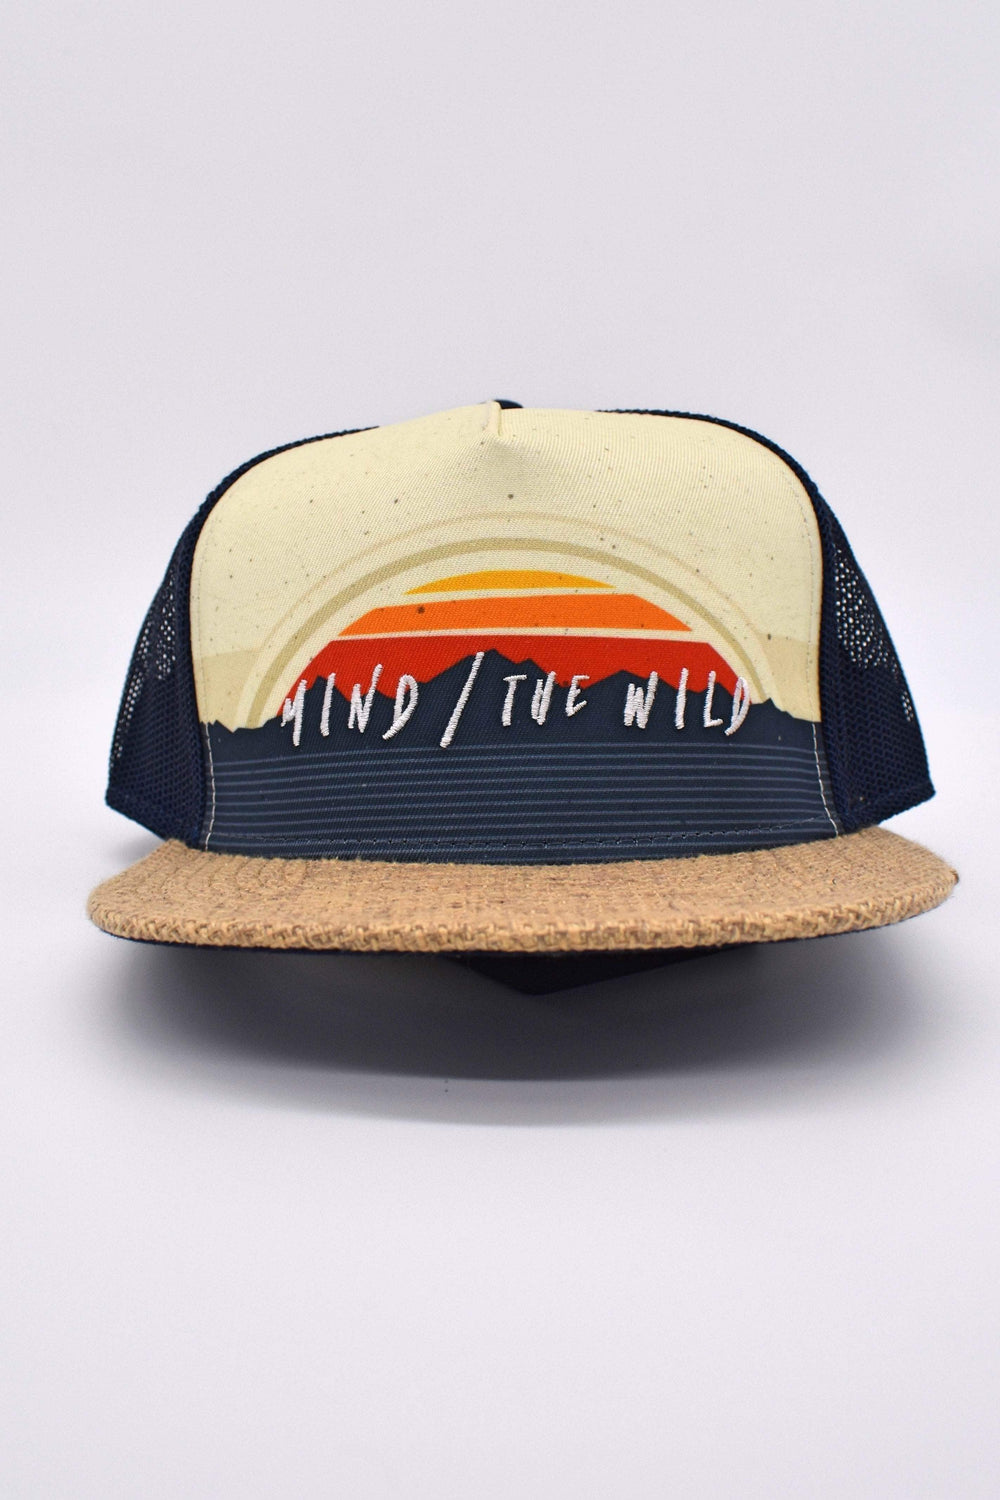 Wild + co Hats Mind the Wild Flat-rim Hat